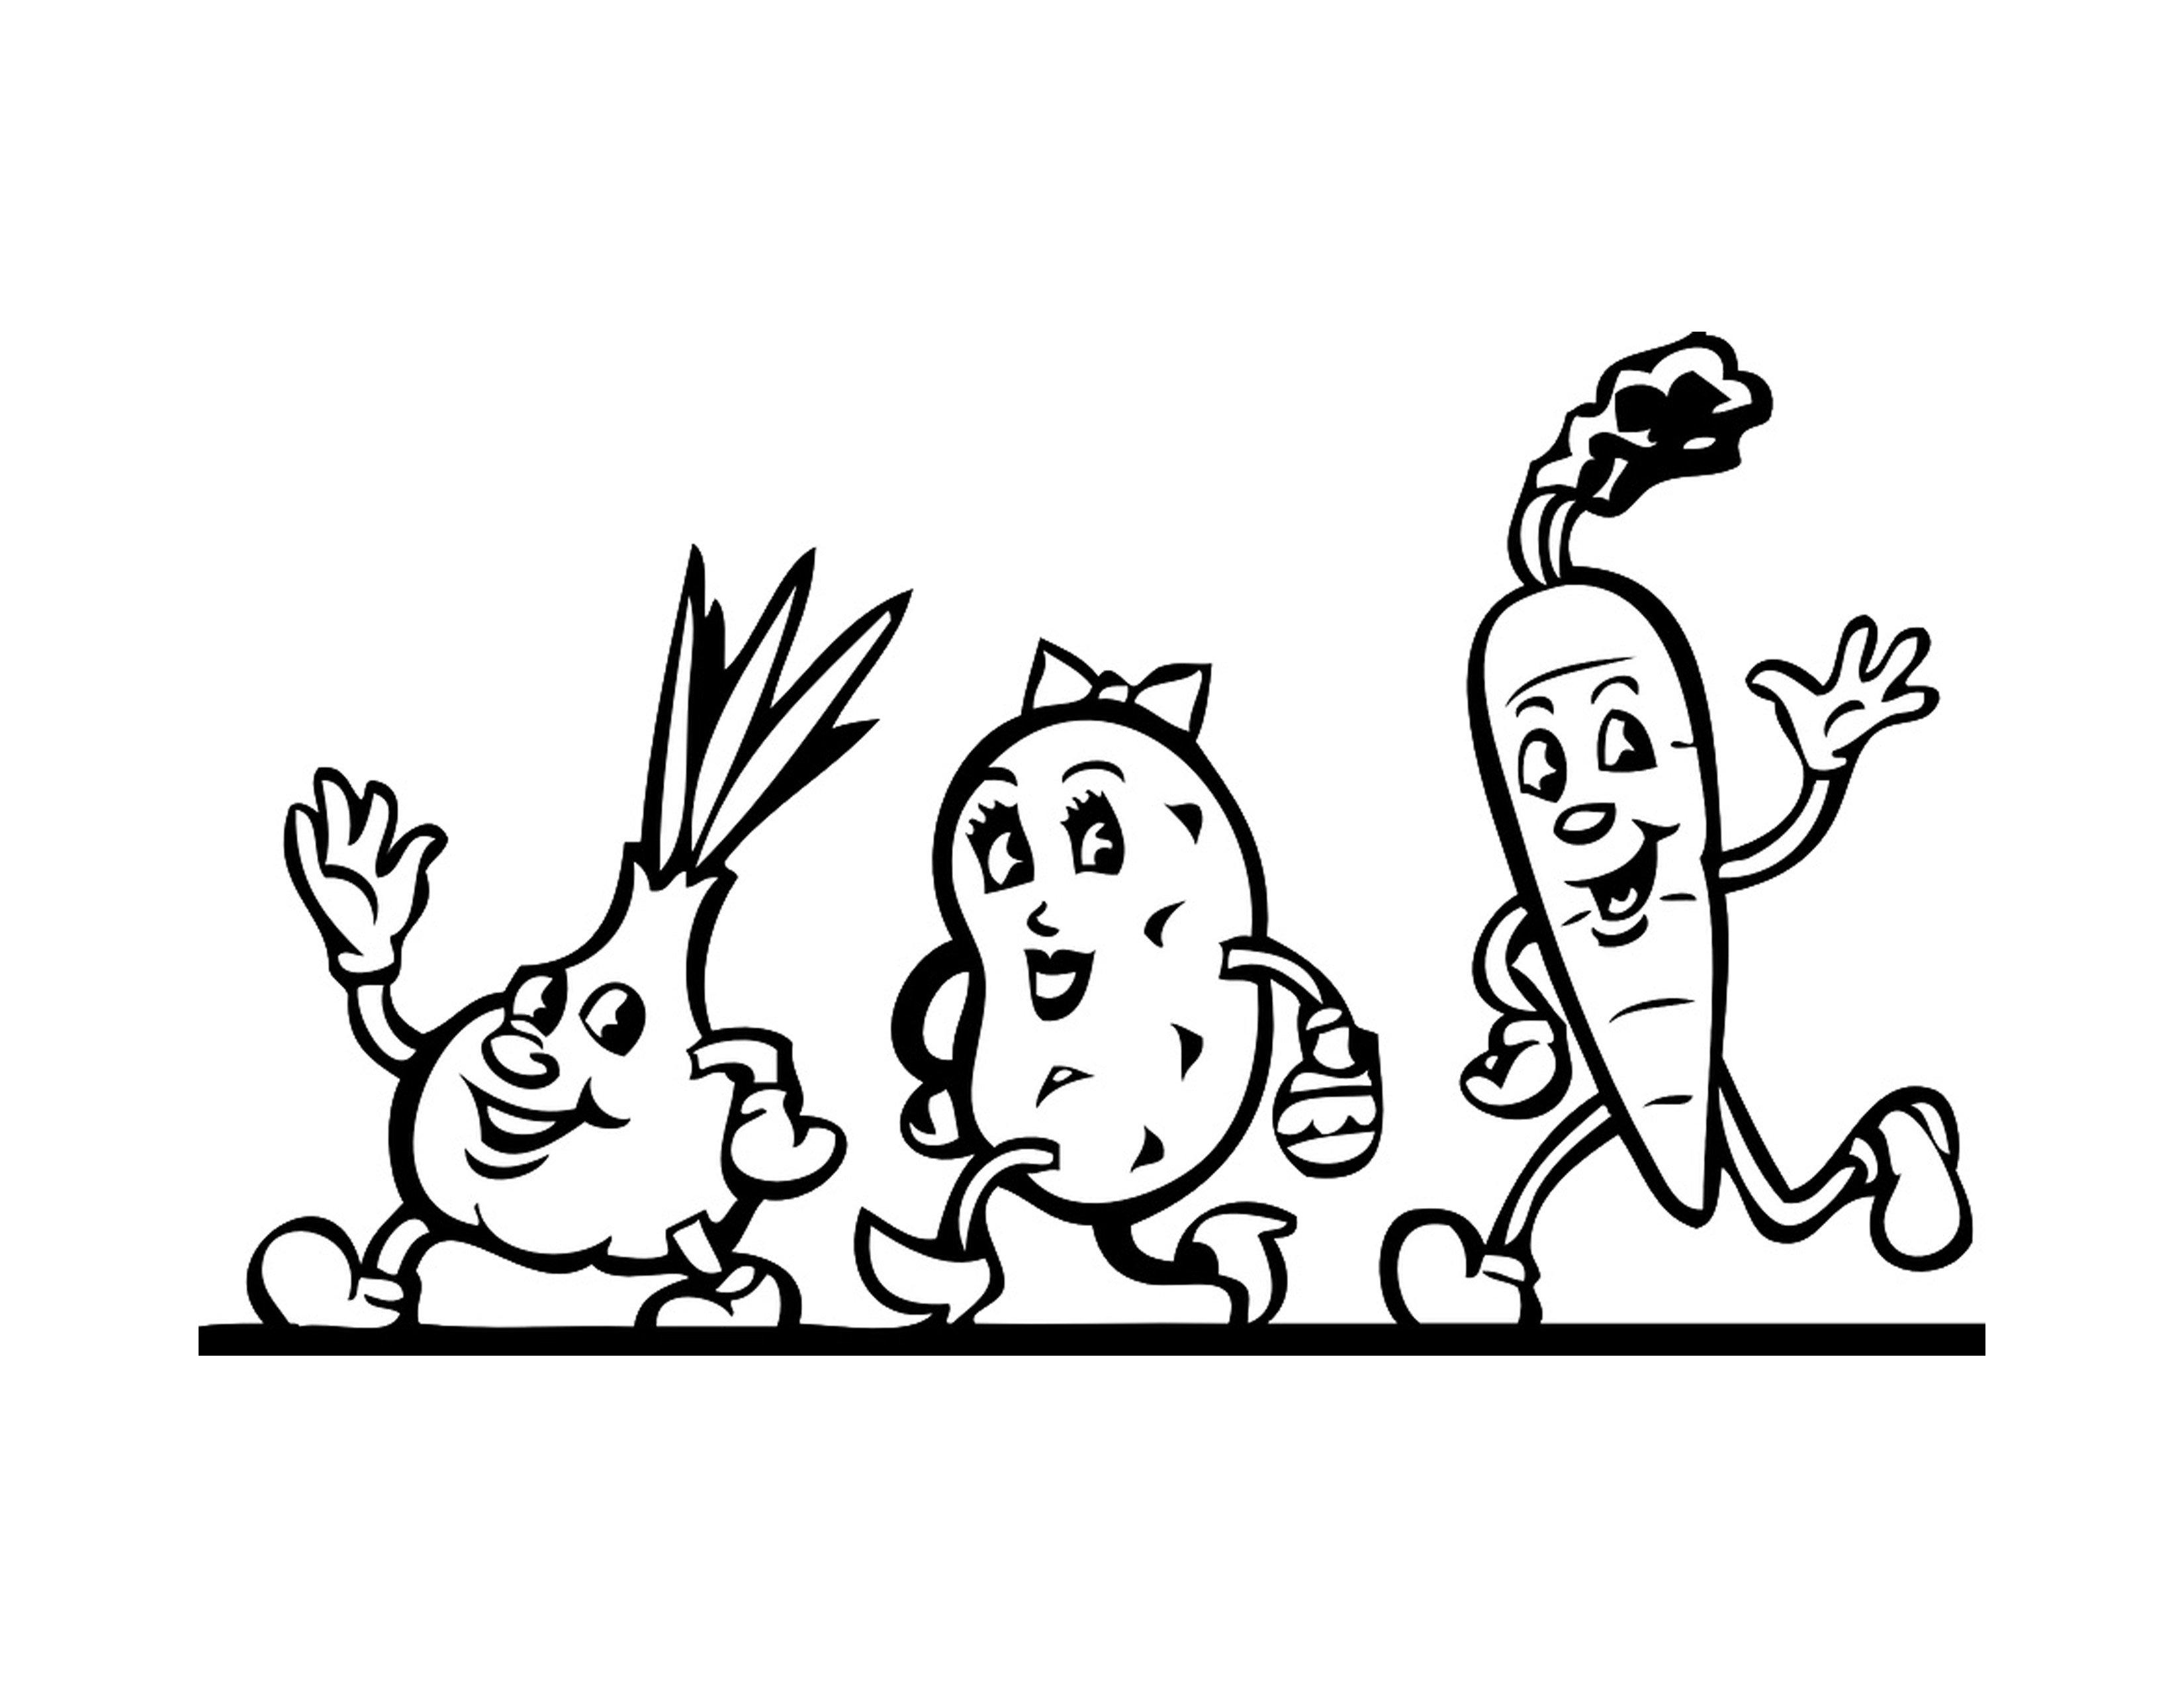 Veggie People Coloring Page